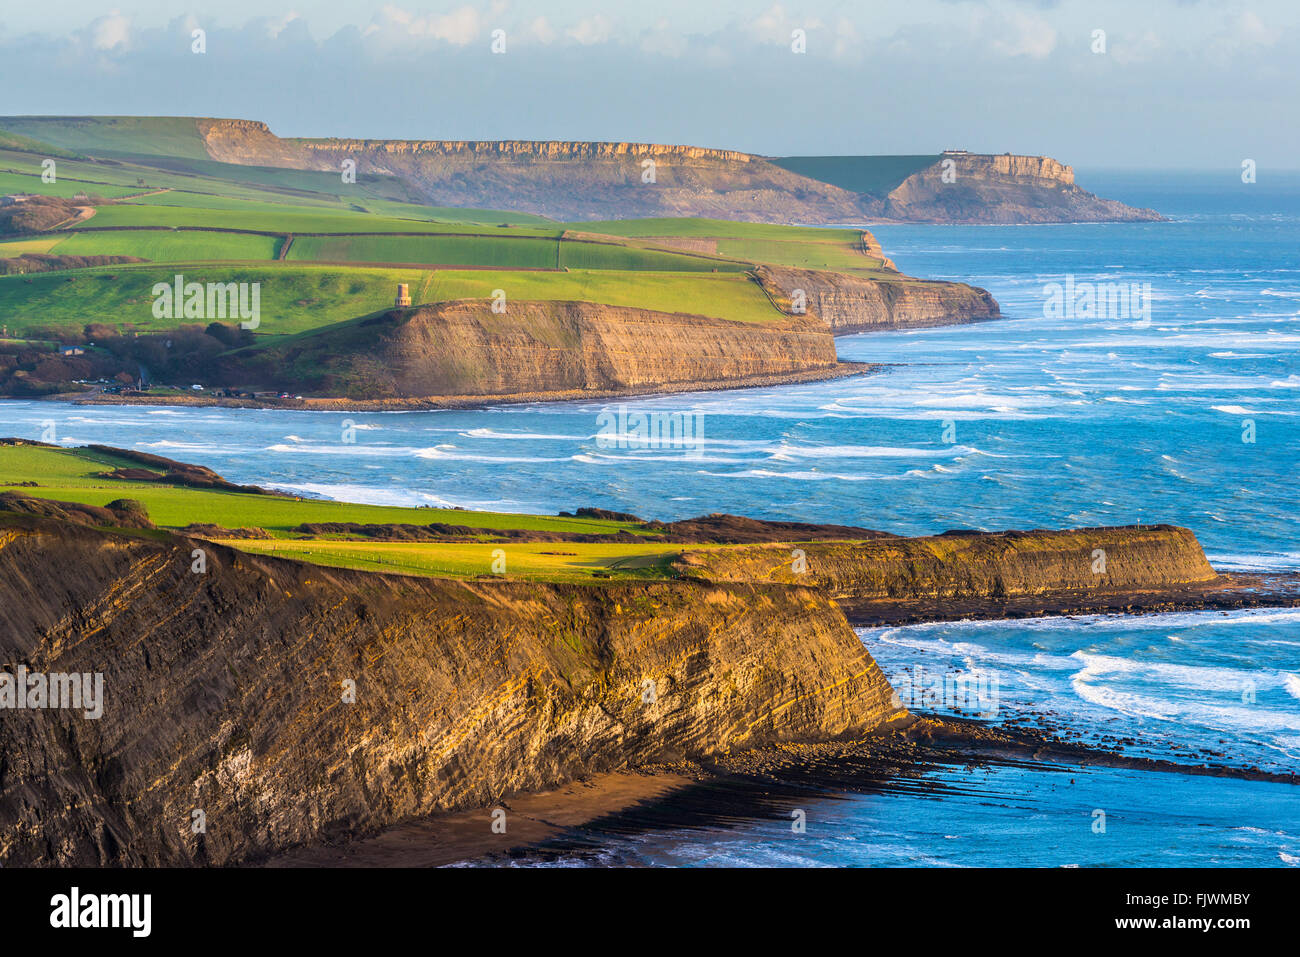 View from Gadd Cliff looking East towards Kimmeridge Bay and St Aldhelm's Head on Dorset's Jurassic Coast - Stock Image